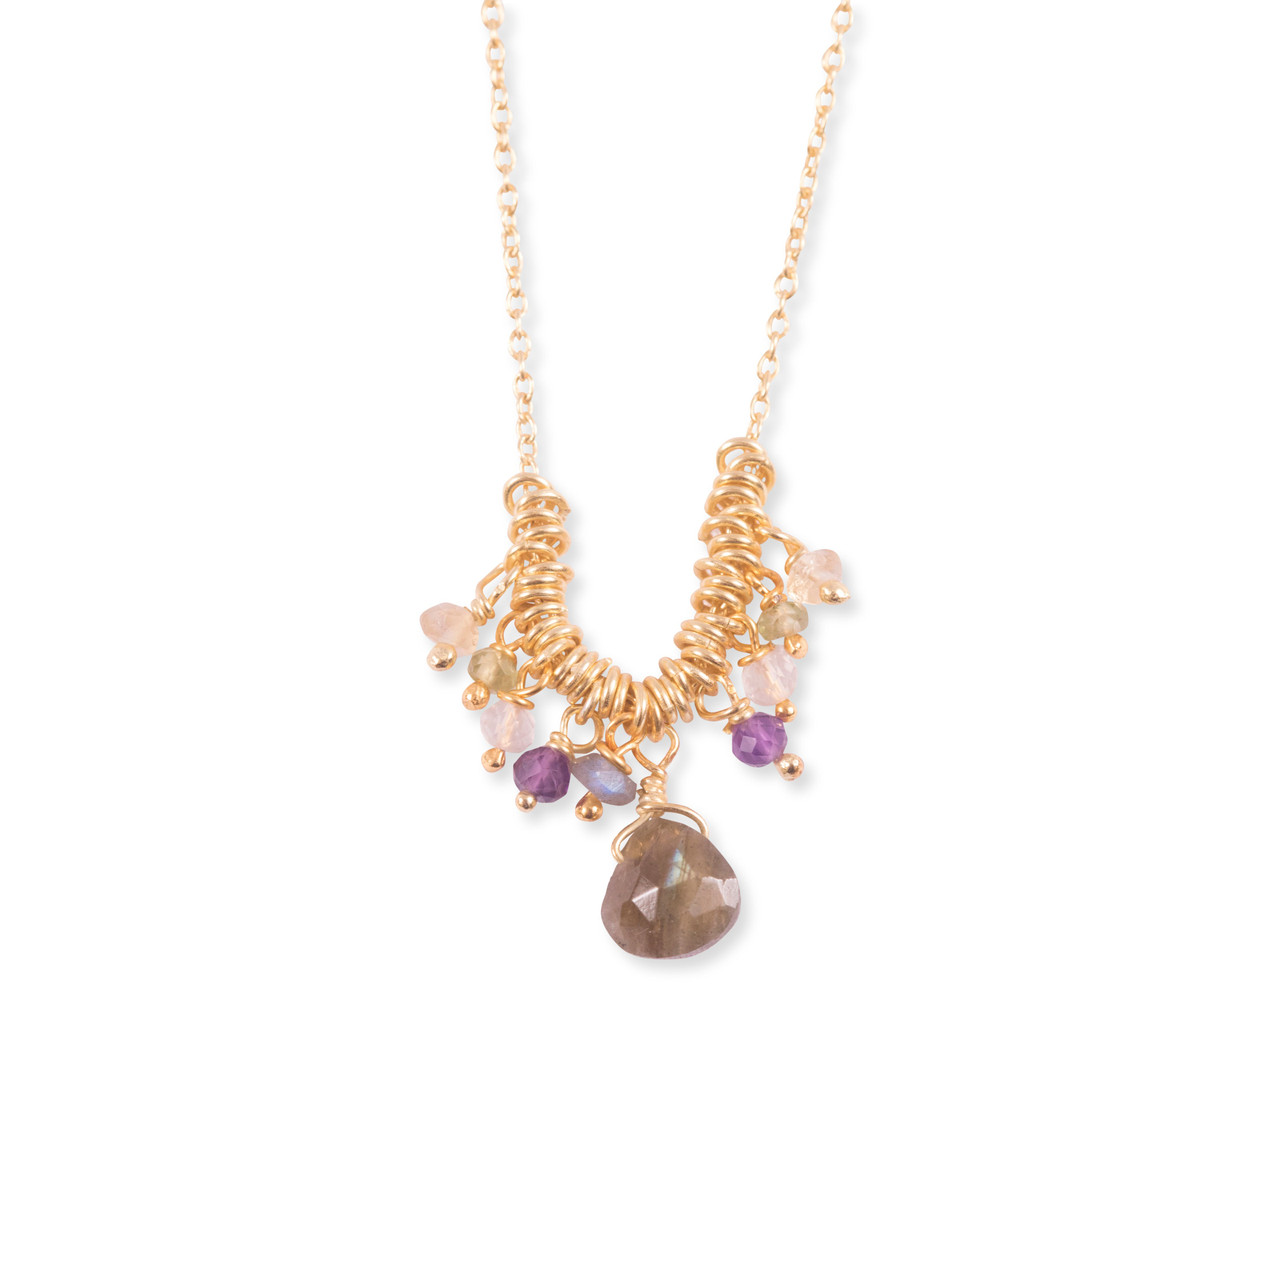 Gold Plated Necklace with Multi-color Beads and Gold Plated Charms close up